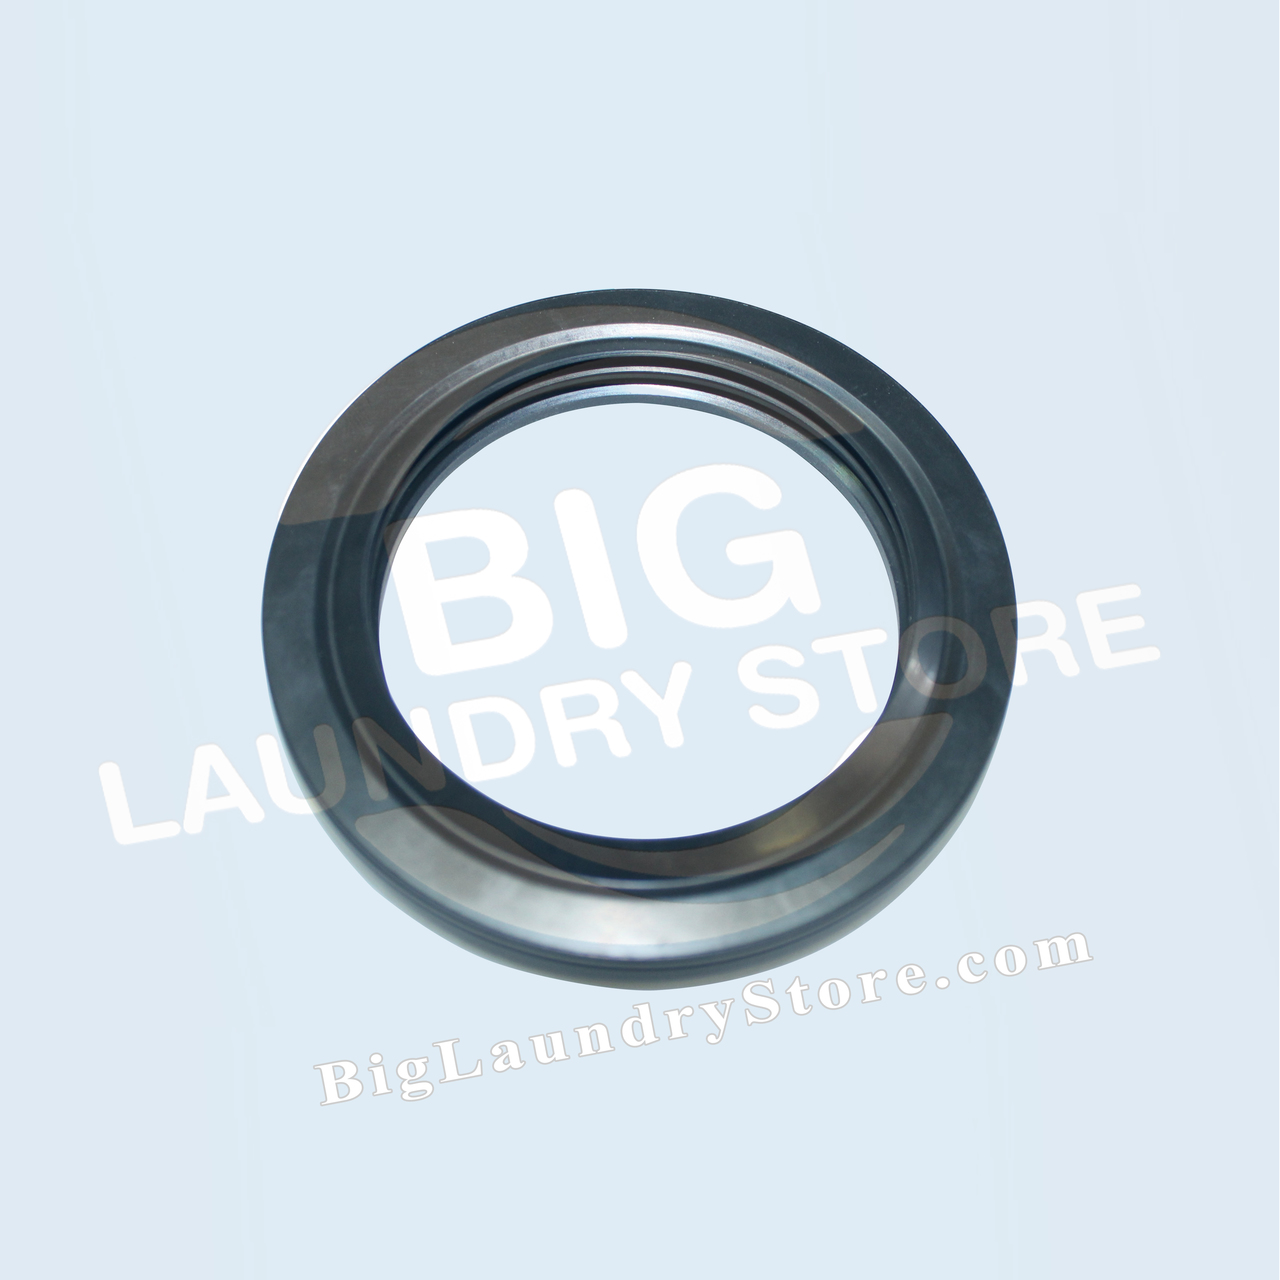 Bearing Seal for 25lbs Washer (65-90-10) - Huebsch, Speed Queen or Unimac # F8203801